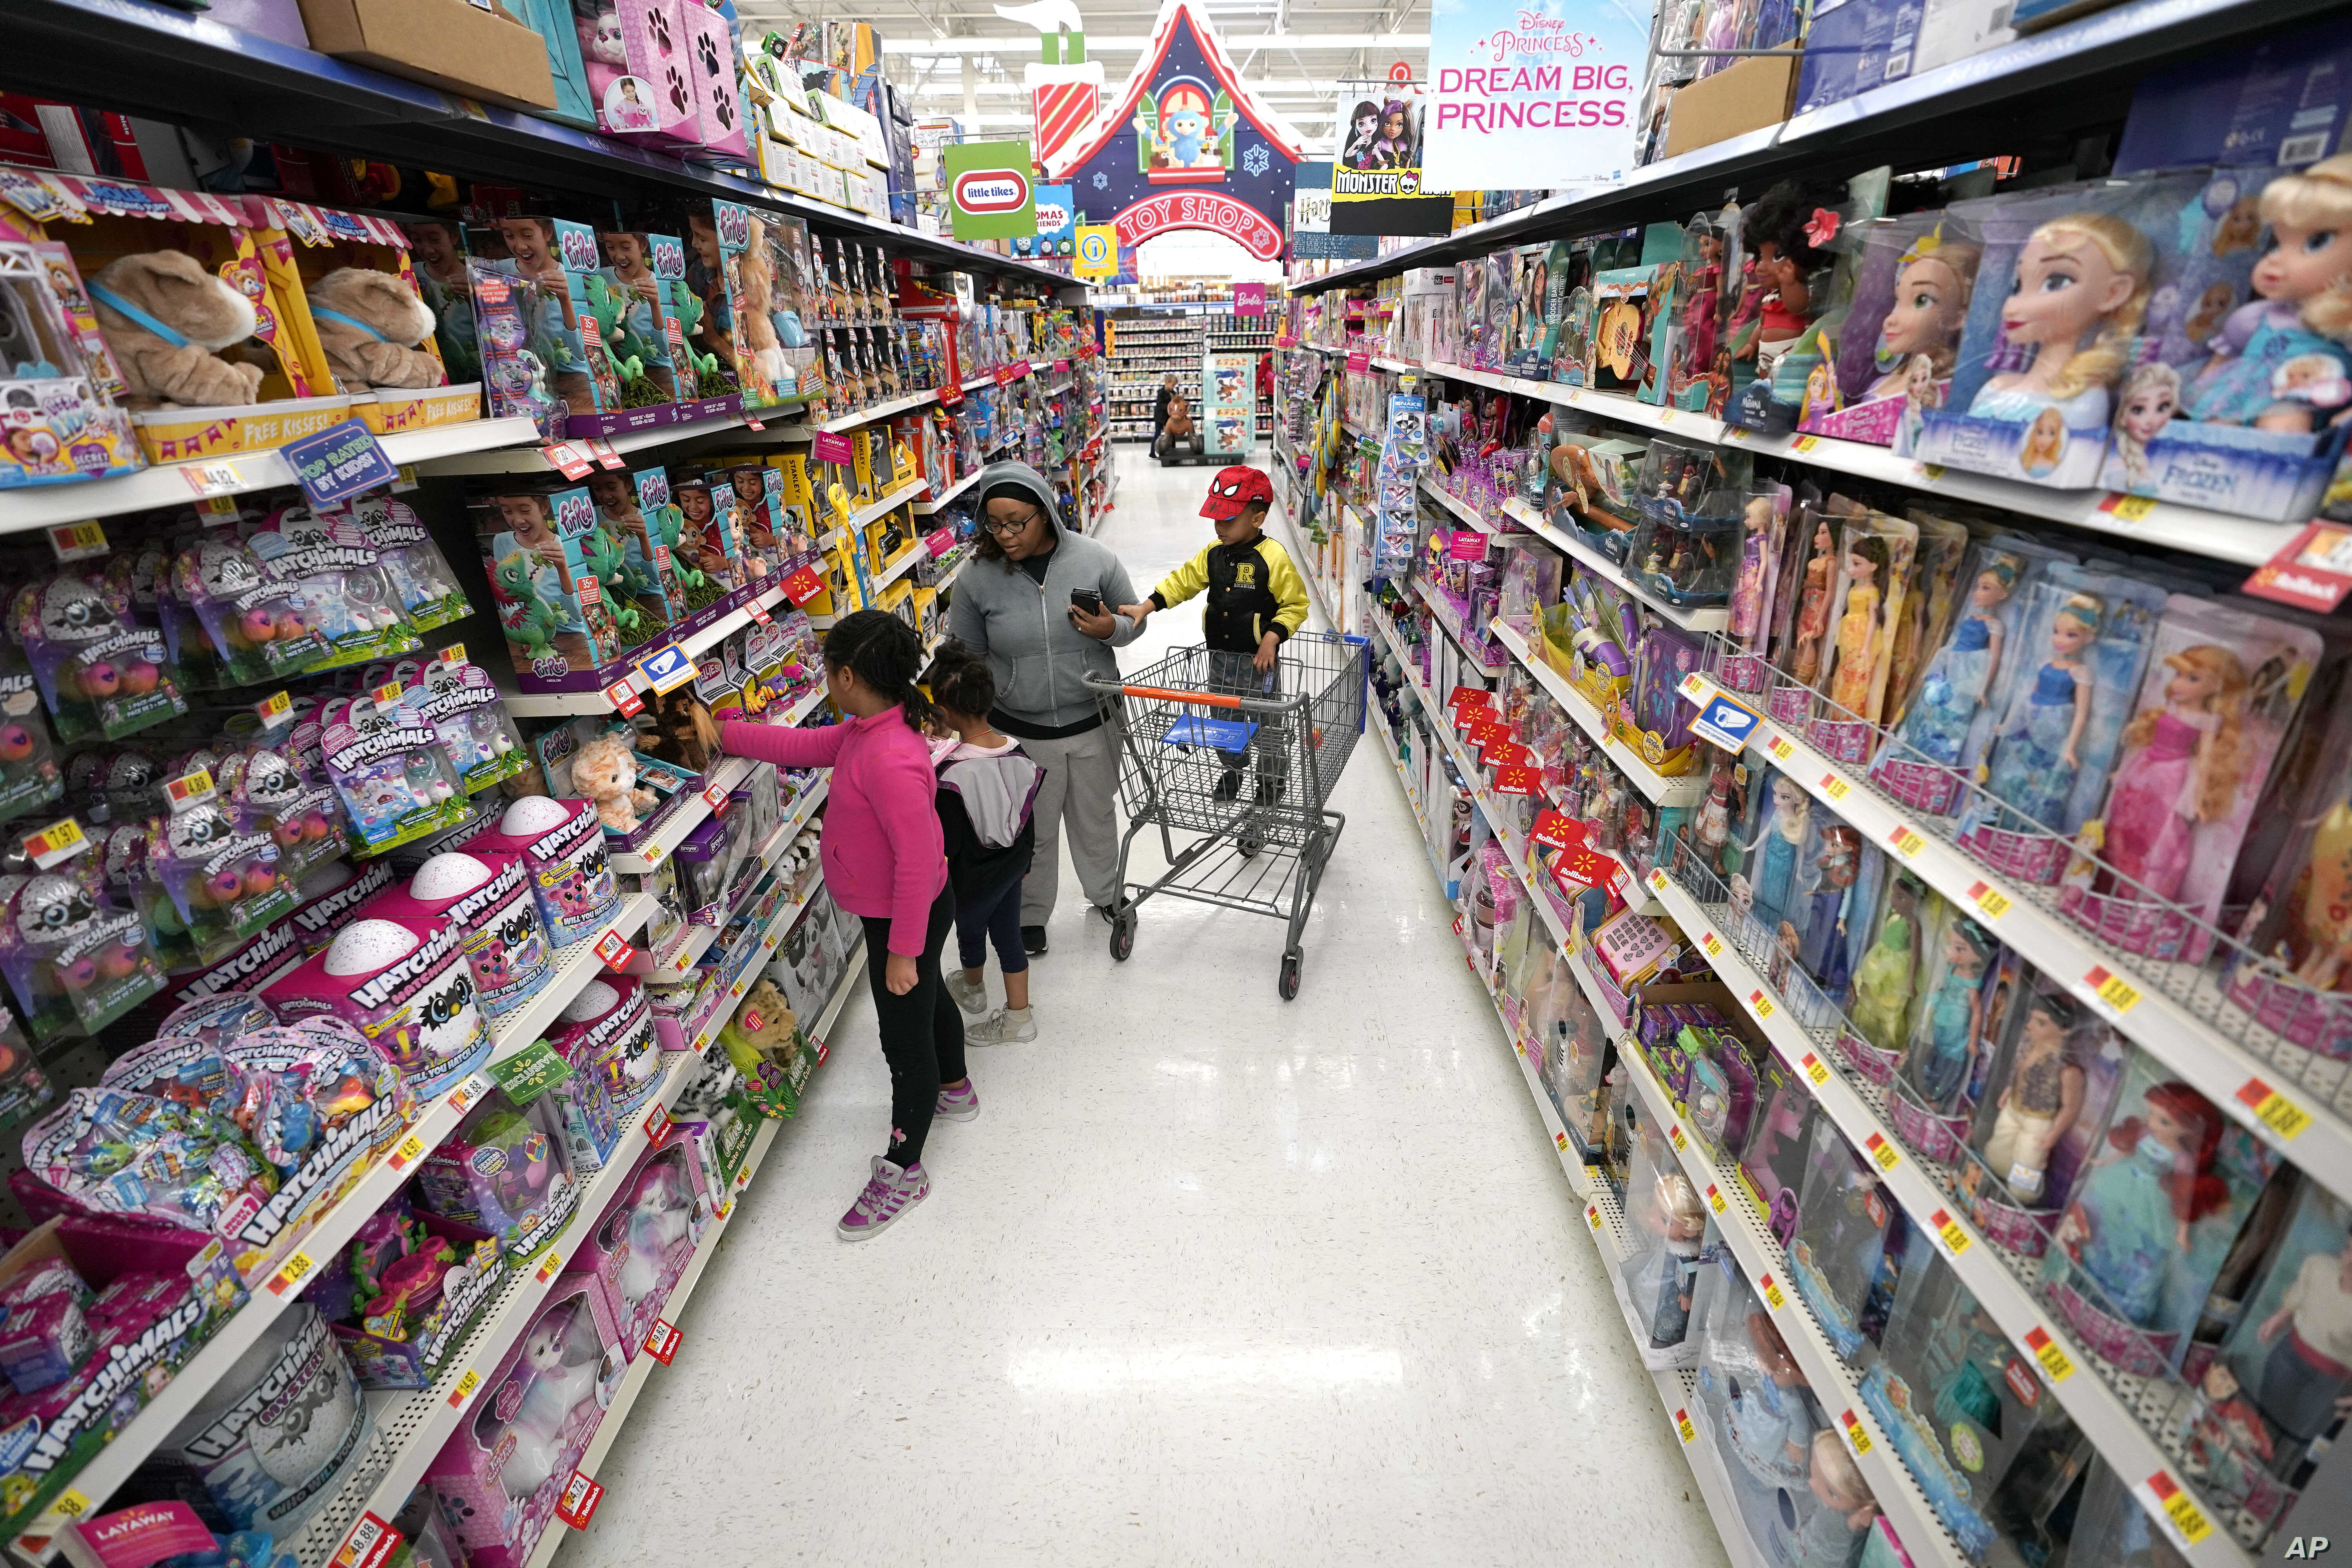 Shoppers look at toys at a Walmart Supercenter in Houston, Texas on Nov. 9, 2018.